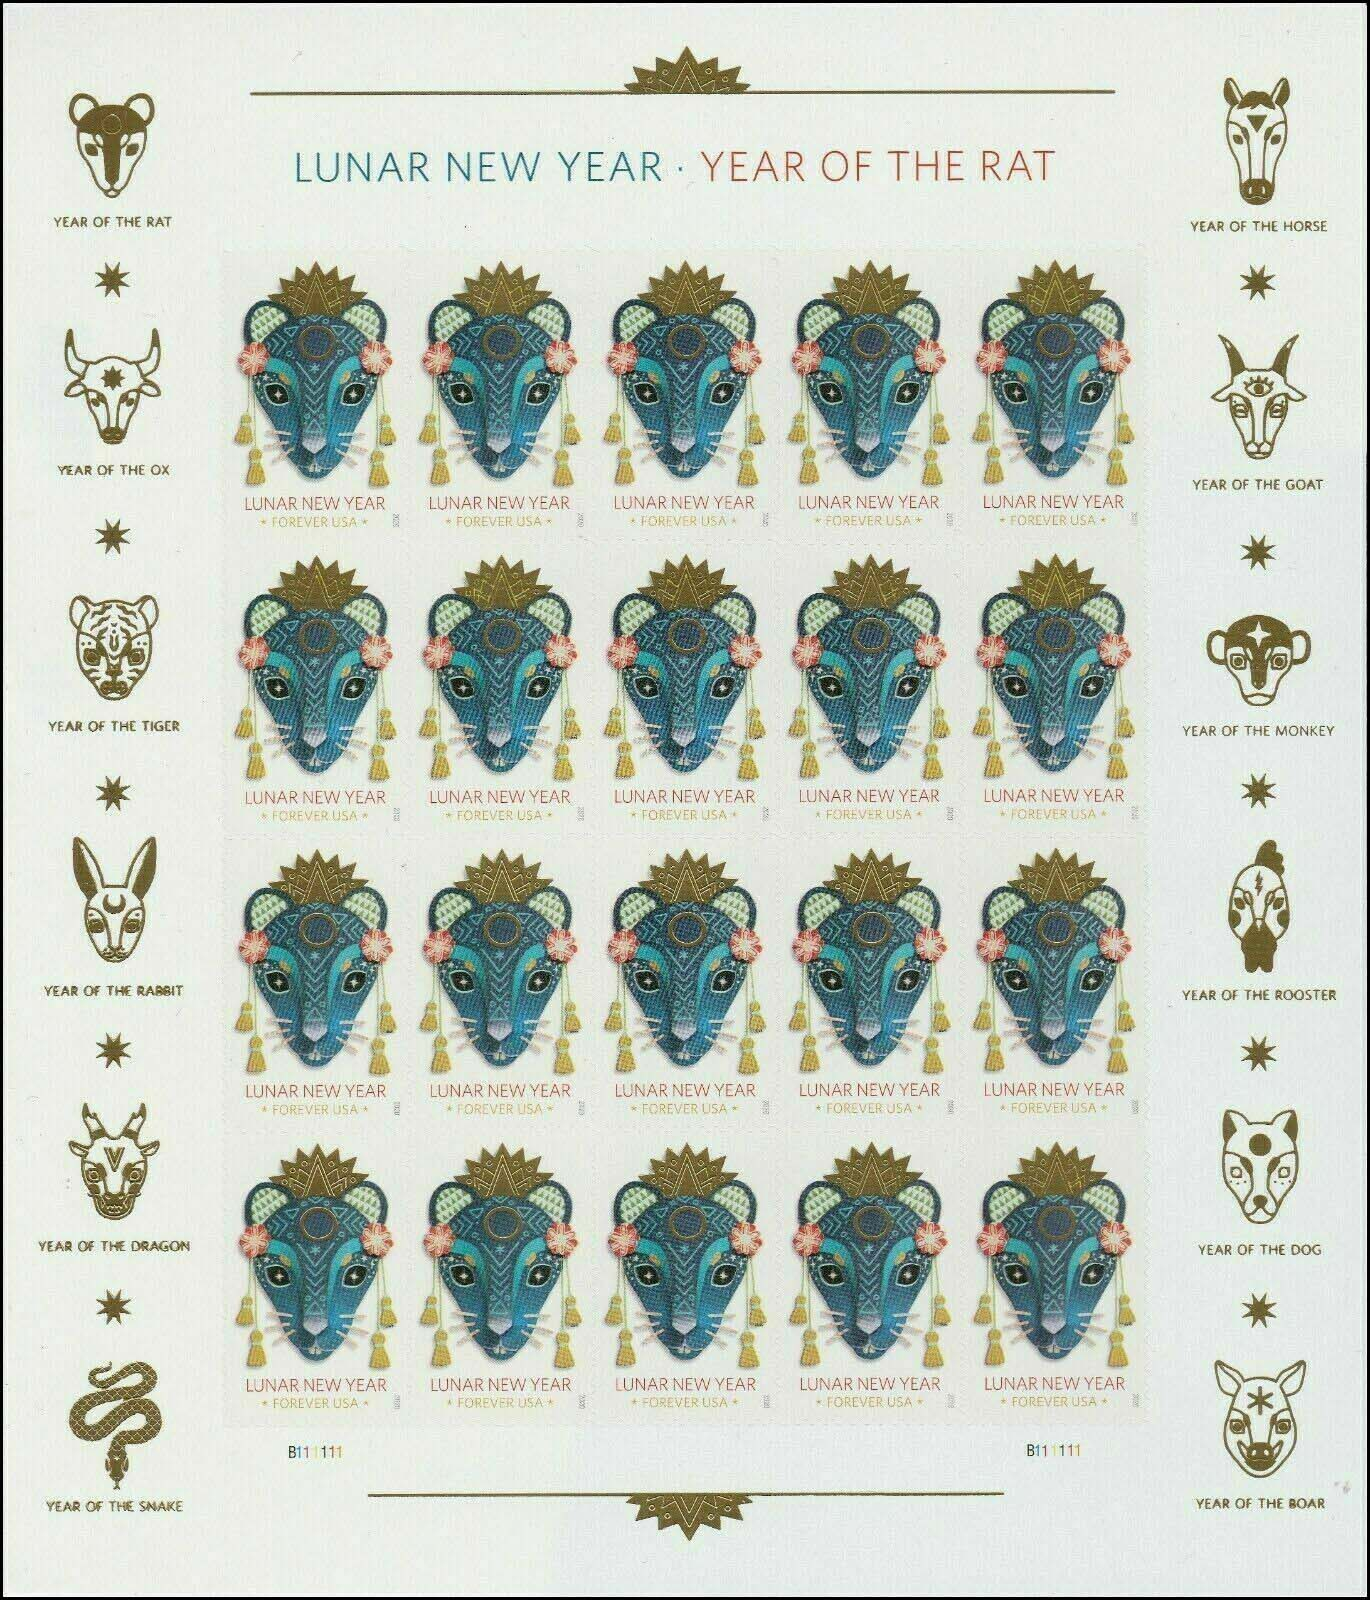 Scott #5428, Forever Sheet of 20, Lunar New Year, Year of The Rat